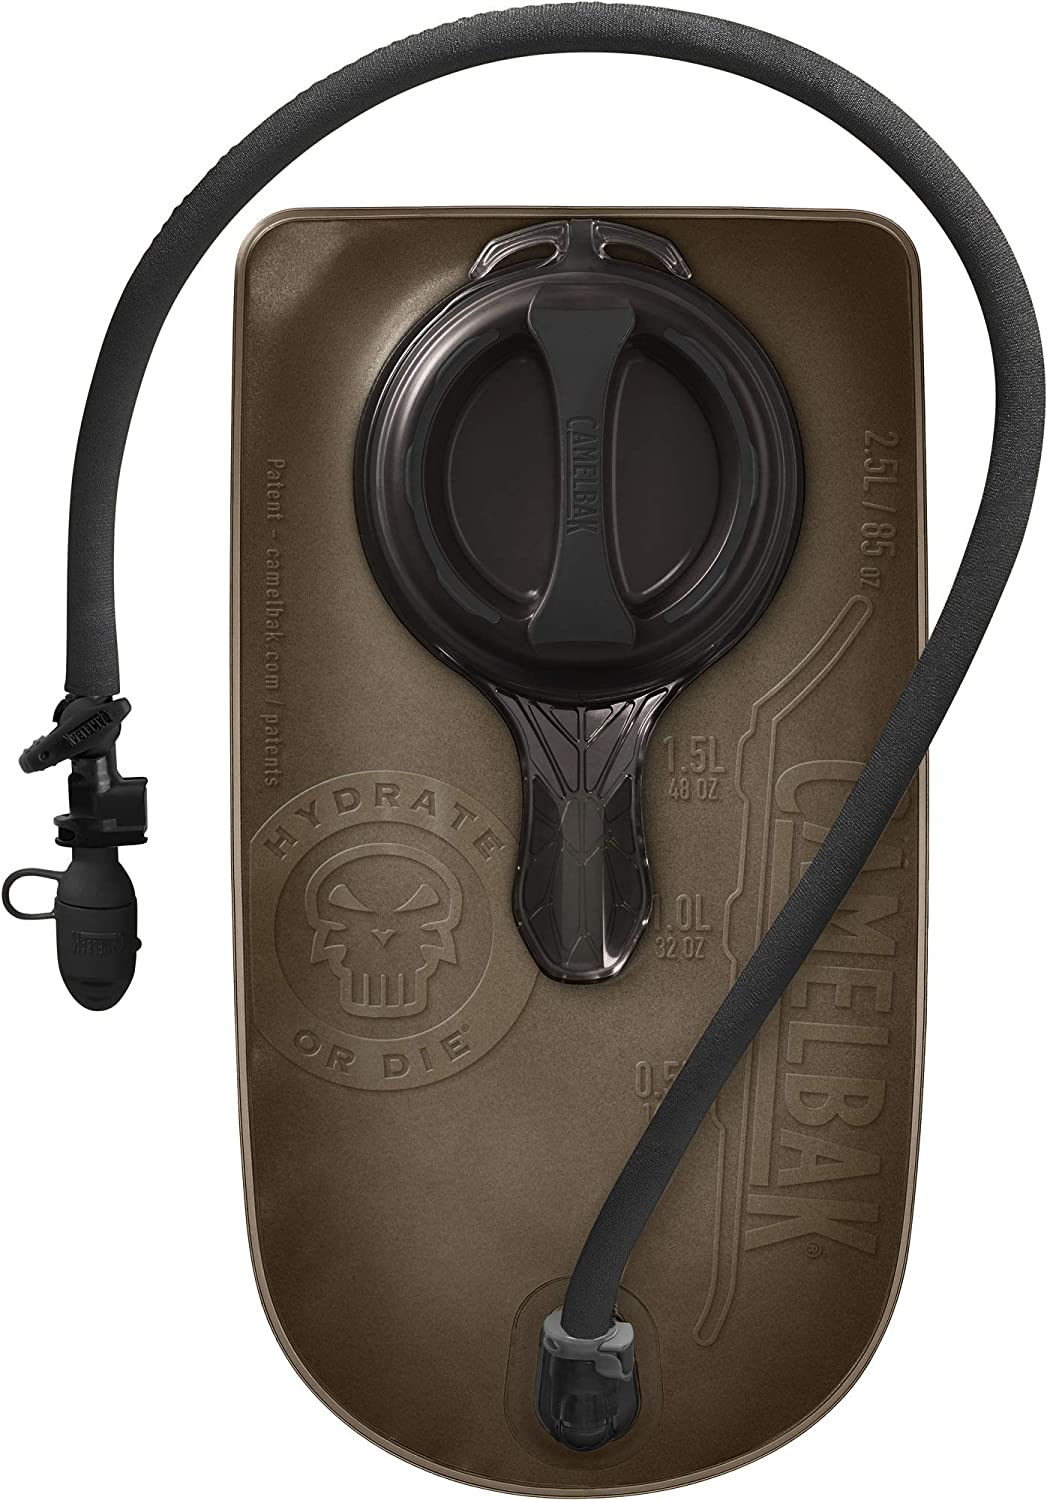 This is an image of a hydration bladder, oody brown in color with black tube cover